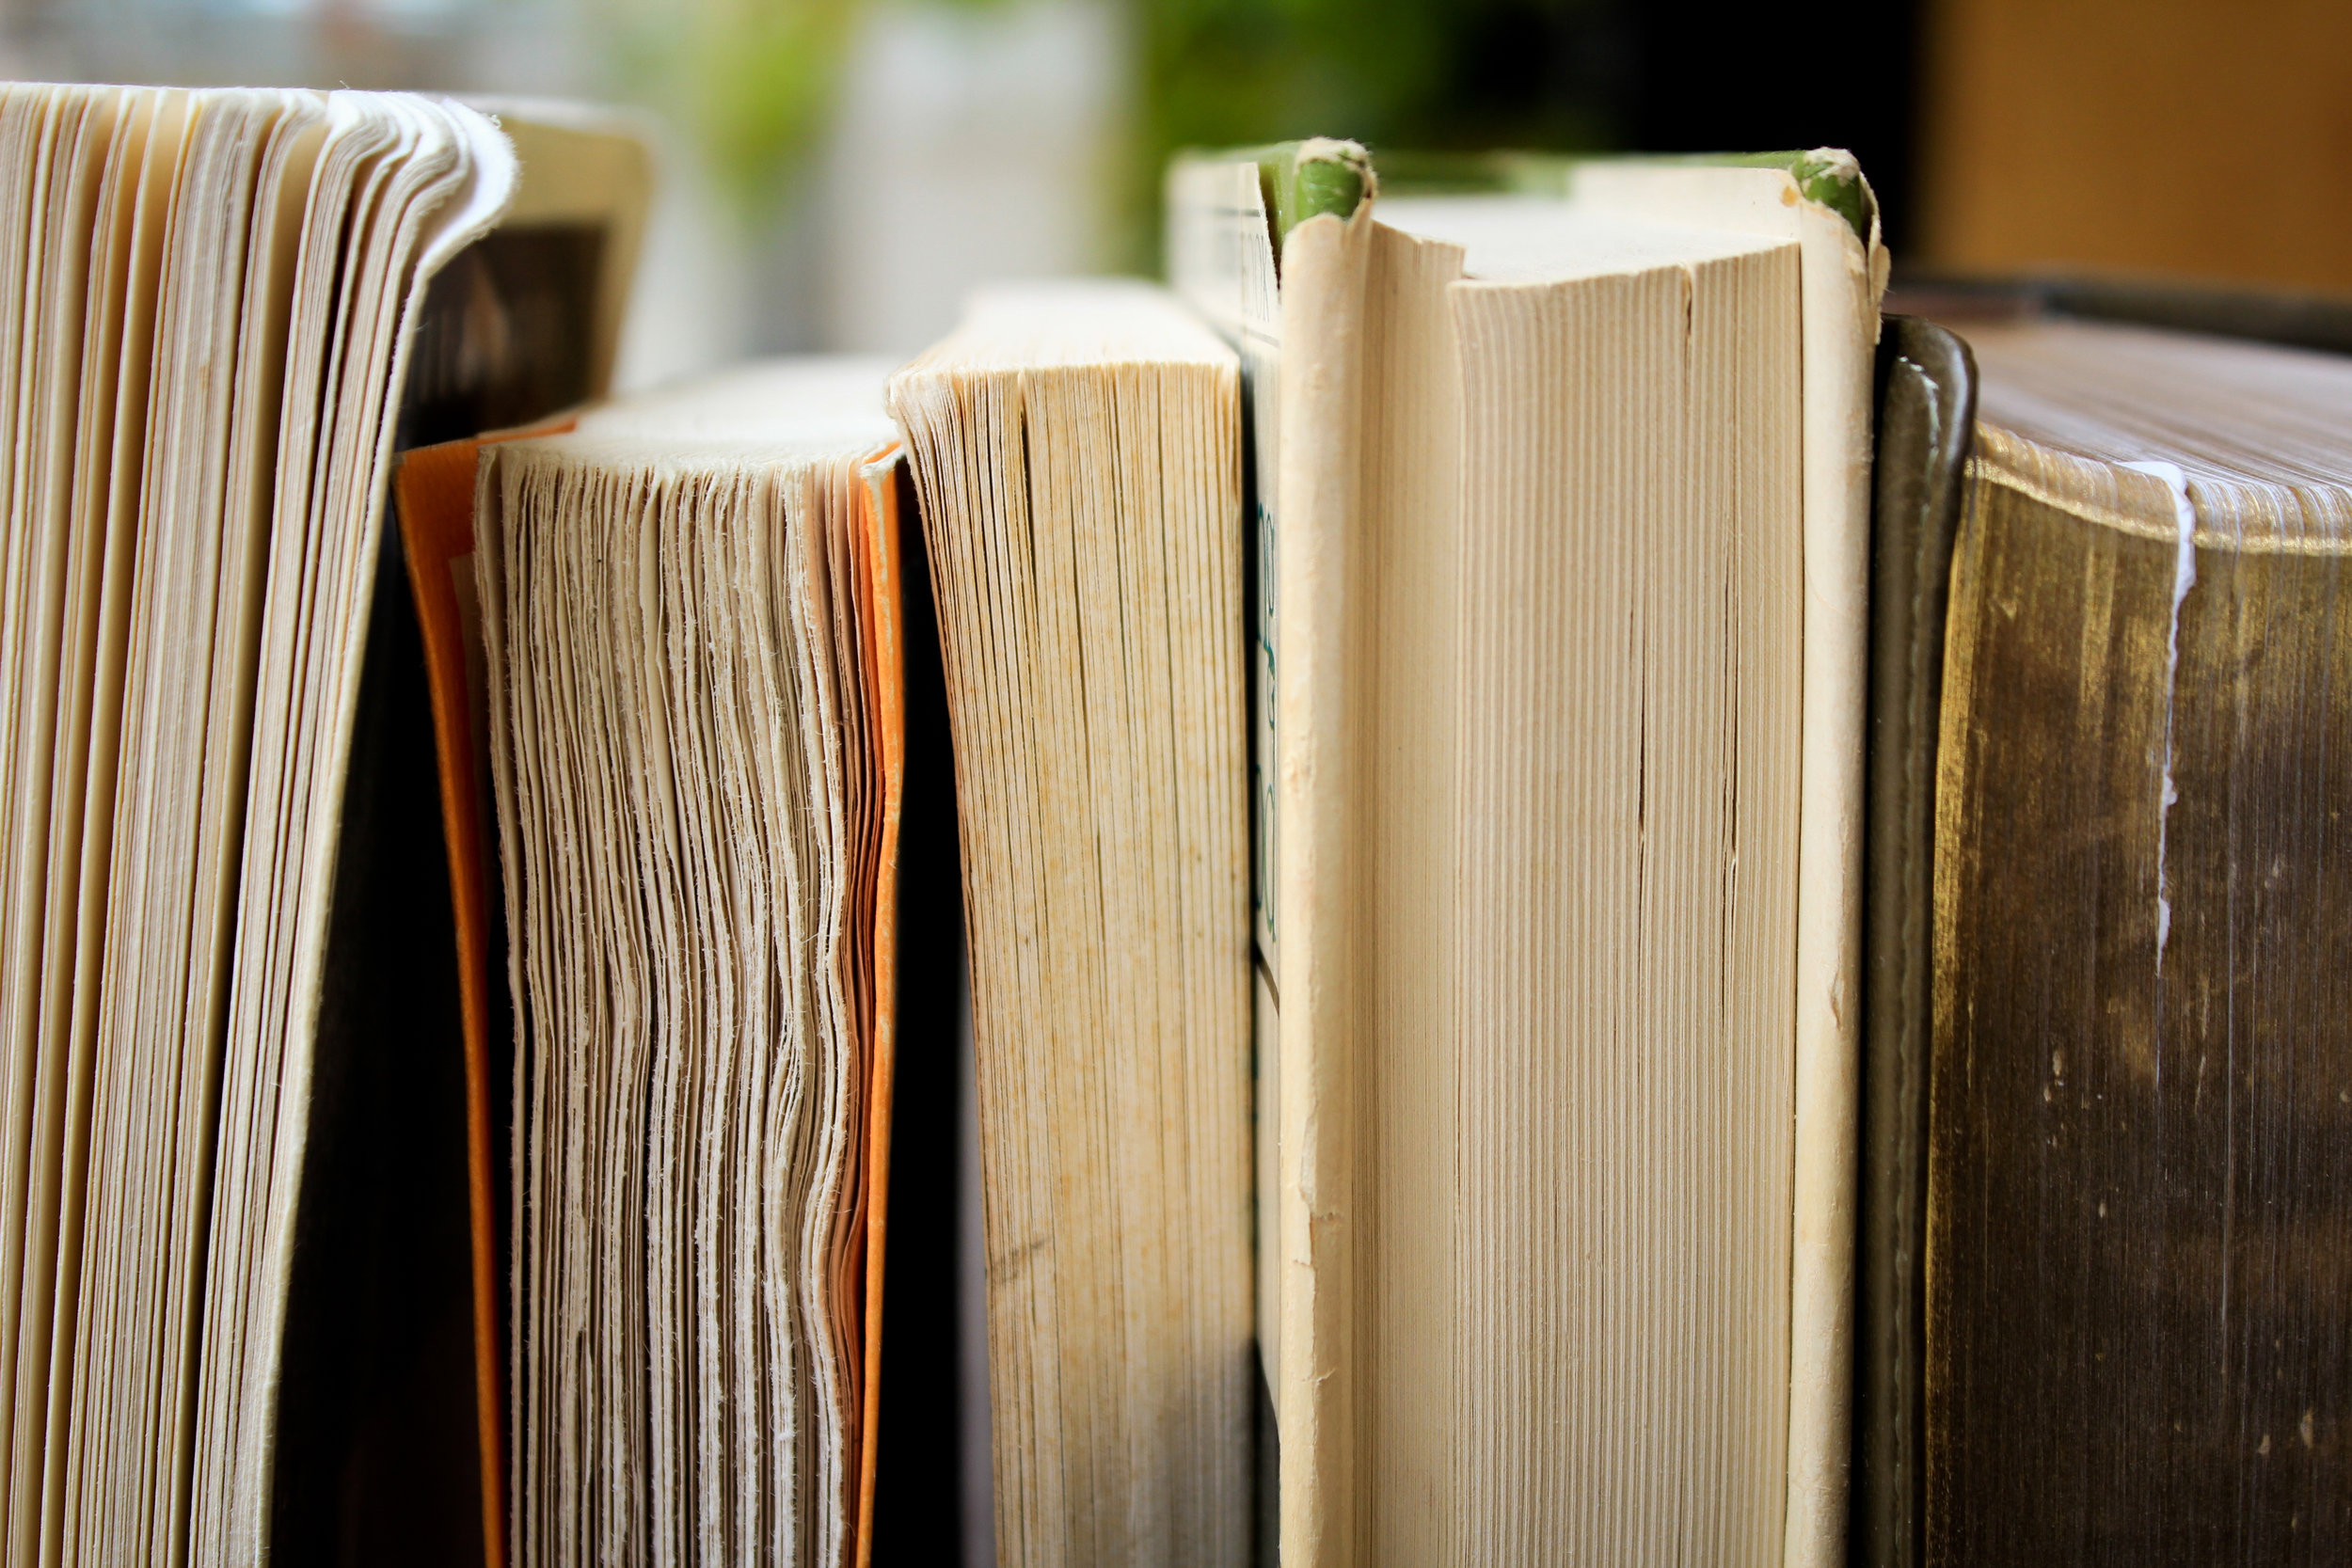 Services - Beta reading and editing for fiction and creative nonfiction.